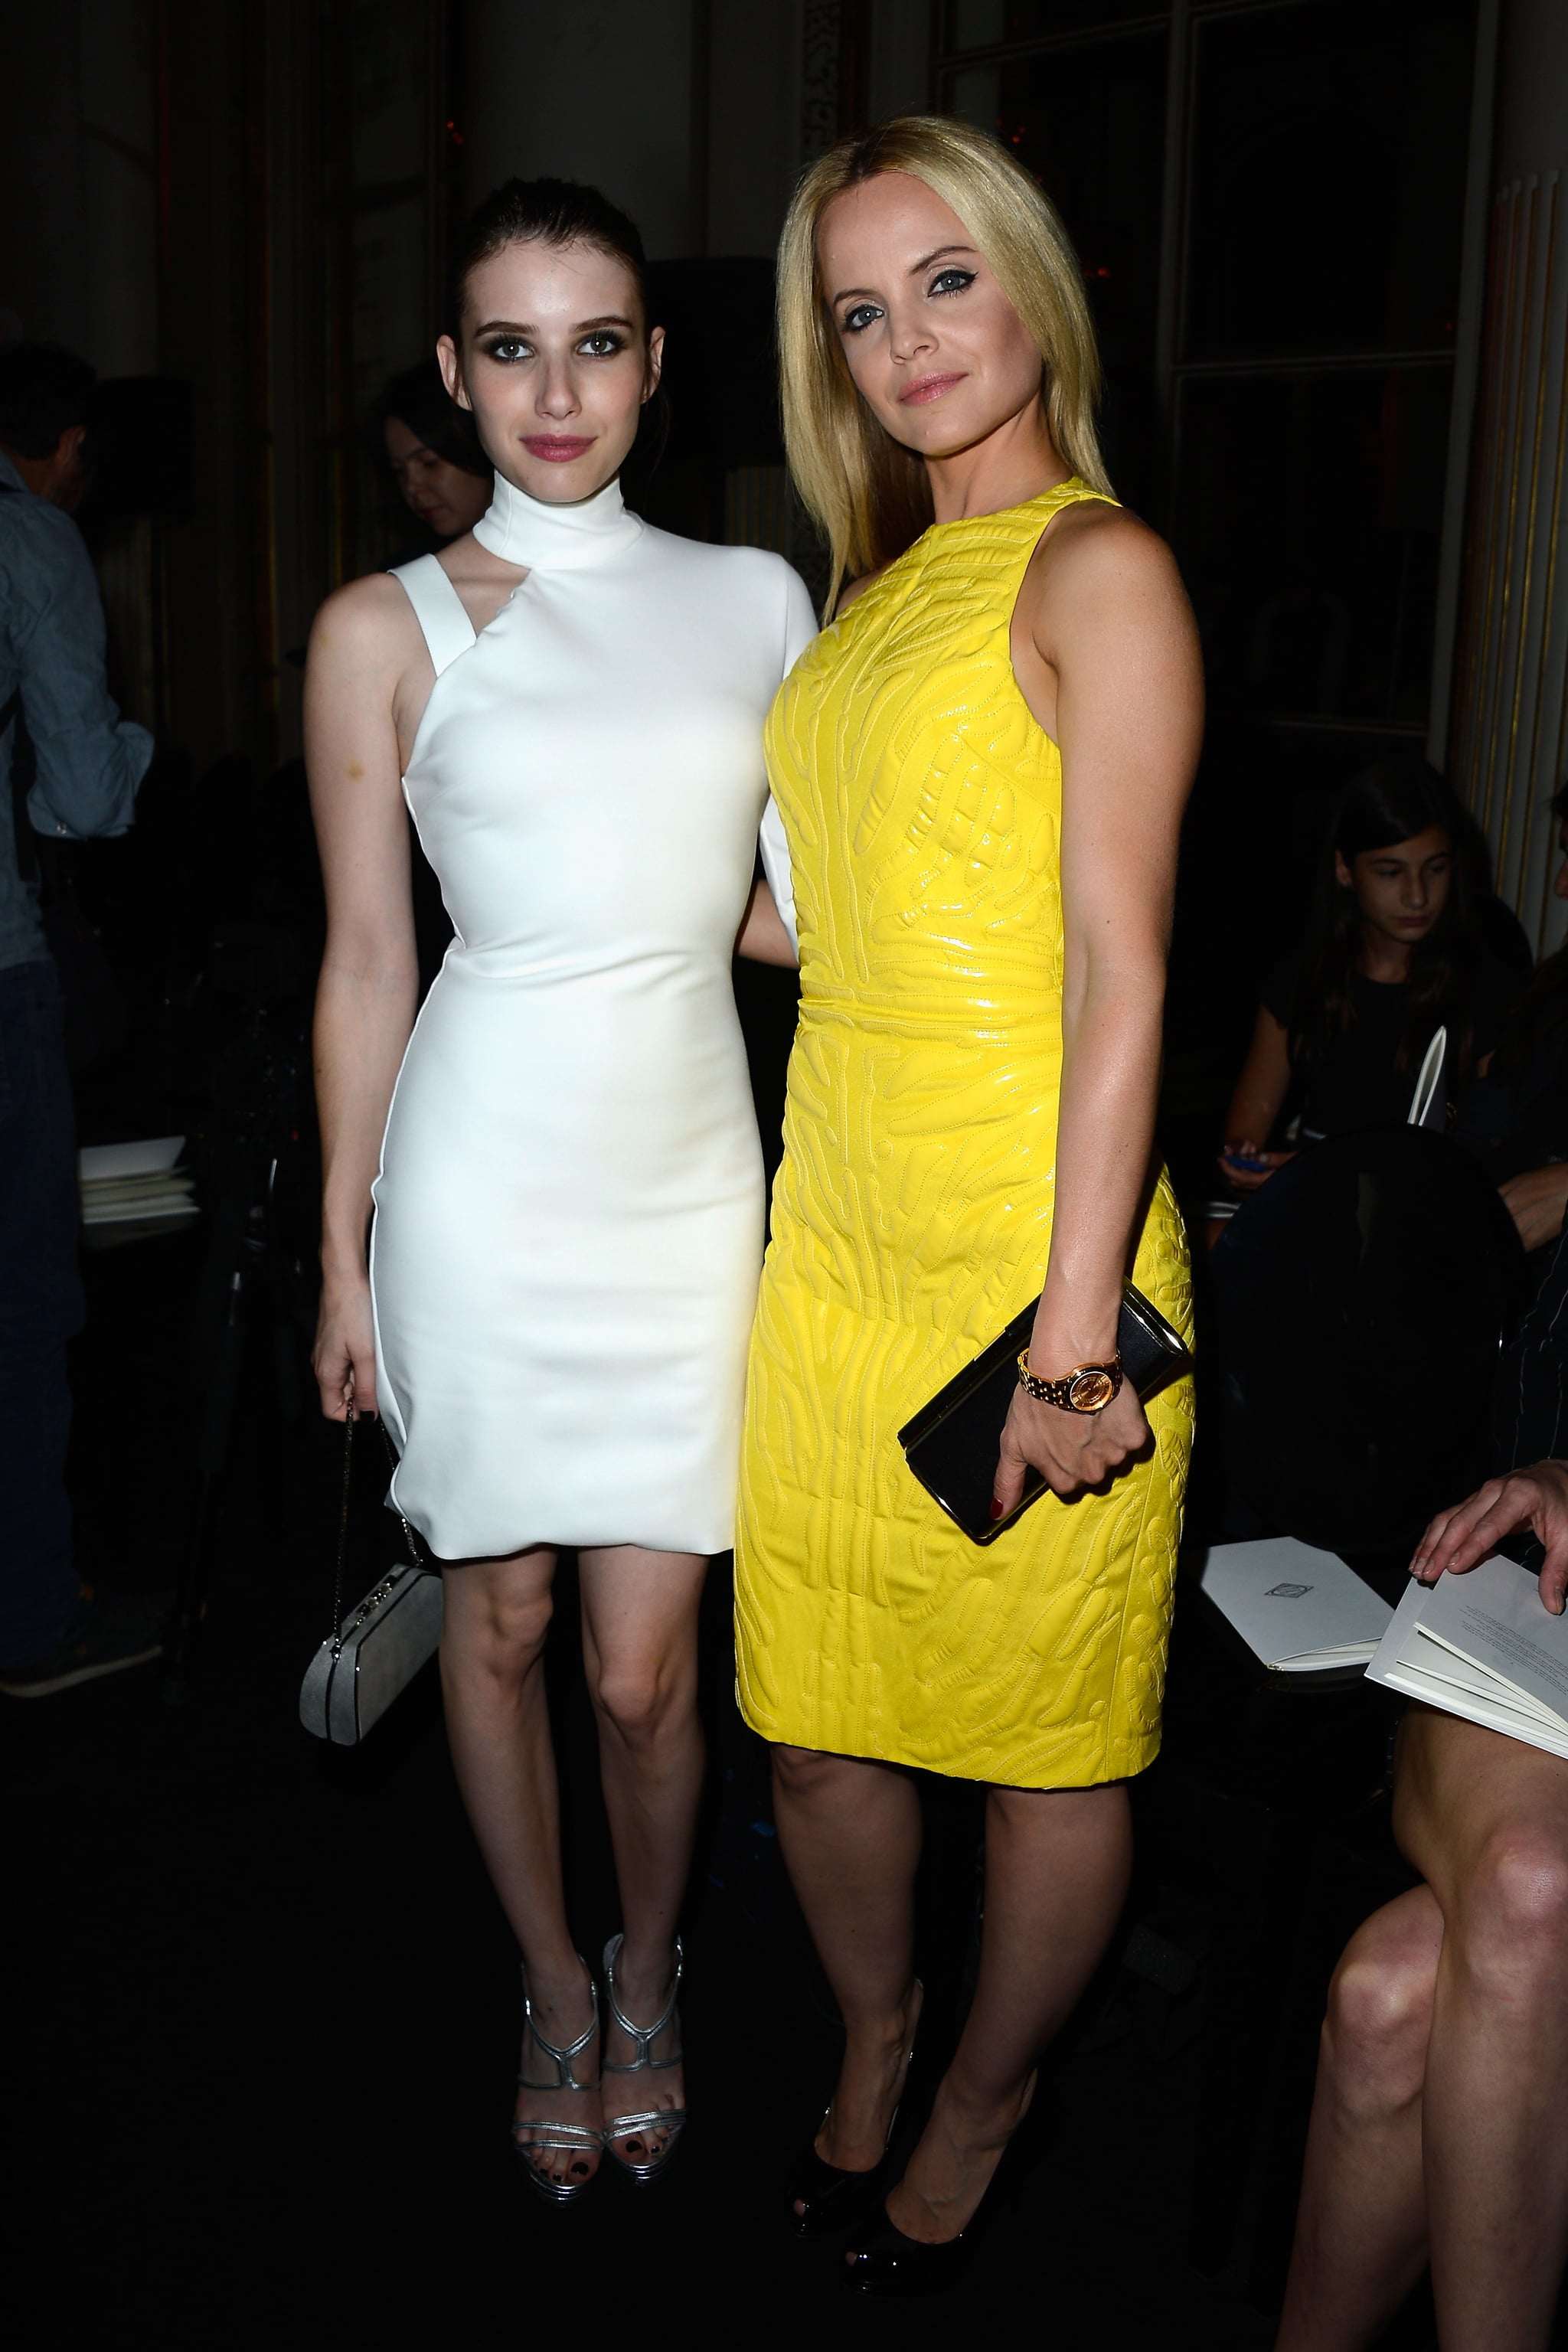 Emma Roberts and Mena Suvari posed together in the front row of Versace's couture show in Paris. Emma opted for a white one-shouldered dress, while Mena picked a bright yellow number, both by Versace.